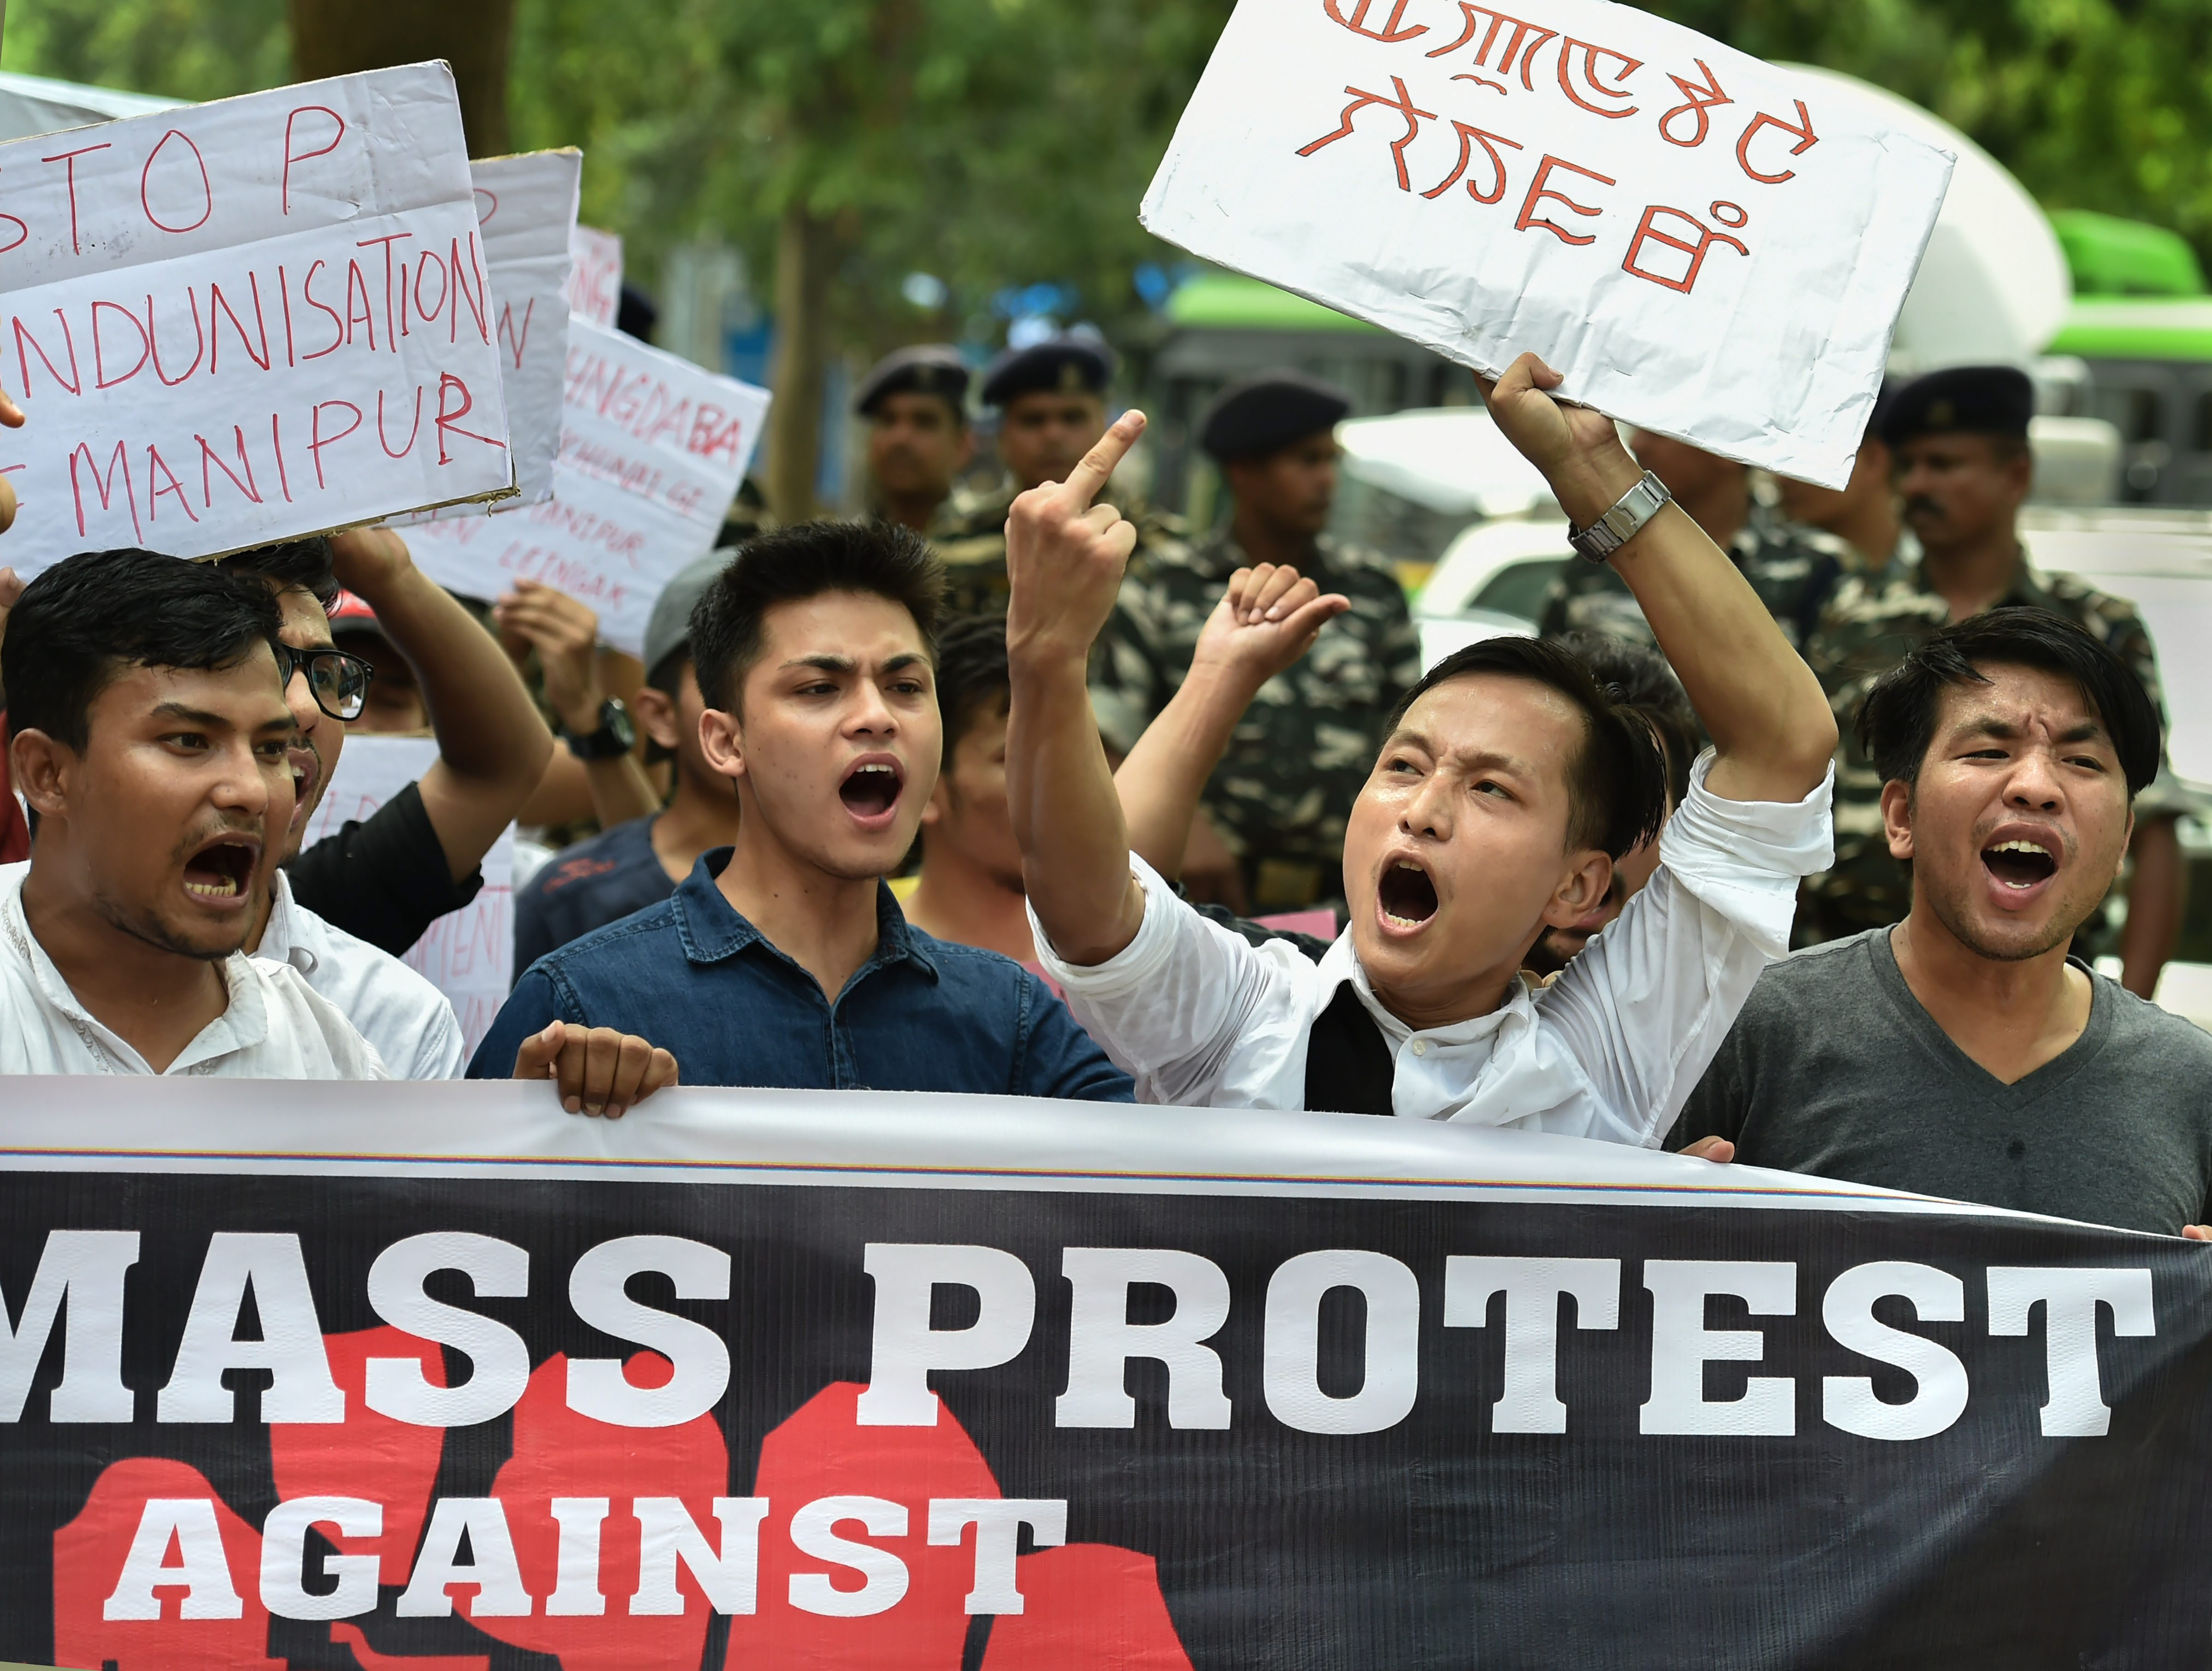 The varsity campus has been tense since May this year due to agitation by teachers and students against vice-chancellor Adya Prasad Pandey, accused of corruption.